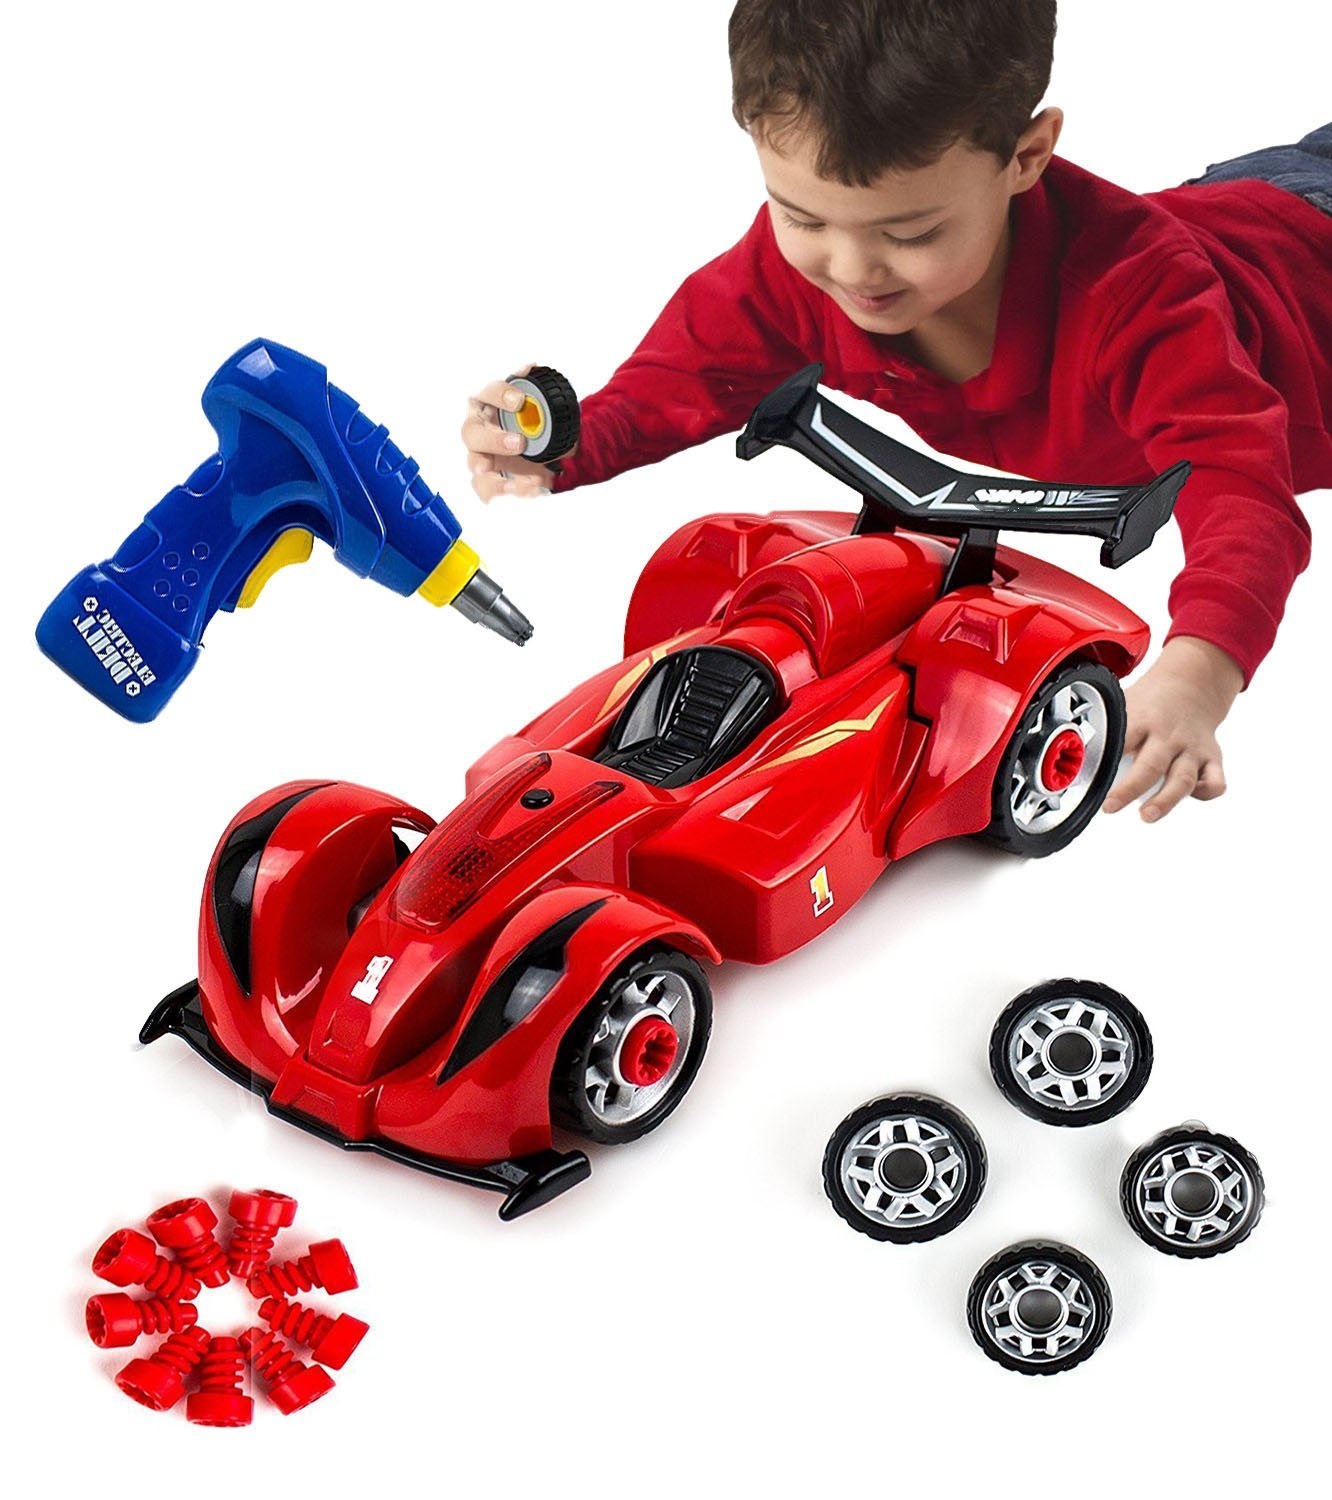 Best toys for 3 7 year old toy cars for boy girls kids gifts for 3 best toys for 3 7 year old toy cars for boy girls kids gifts negle Gallery